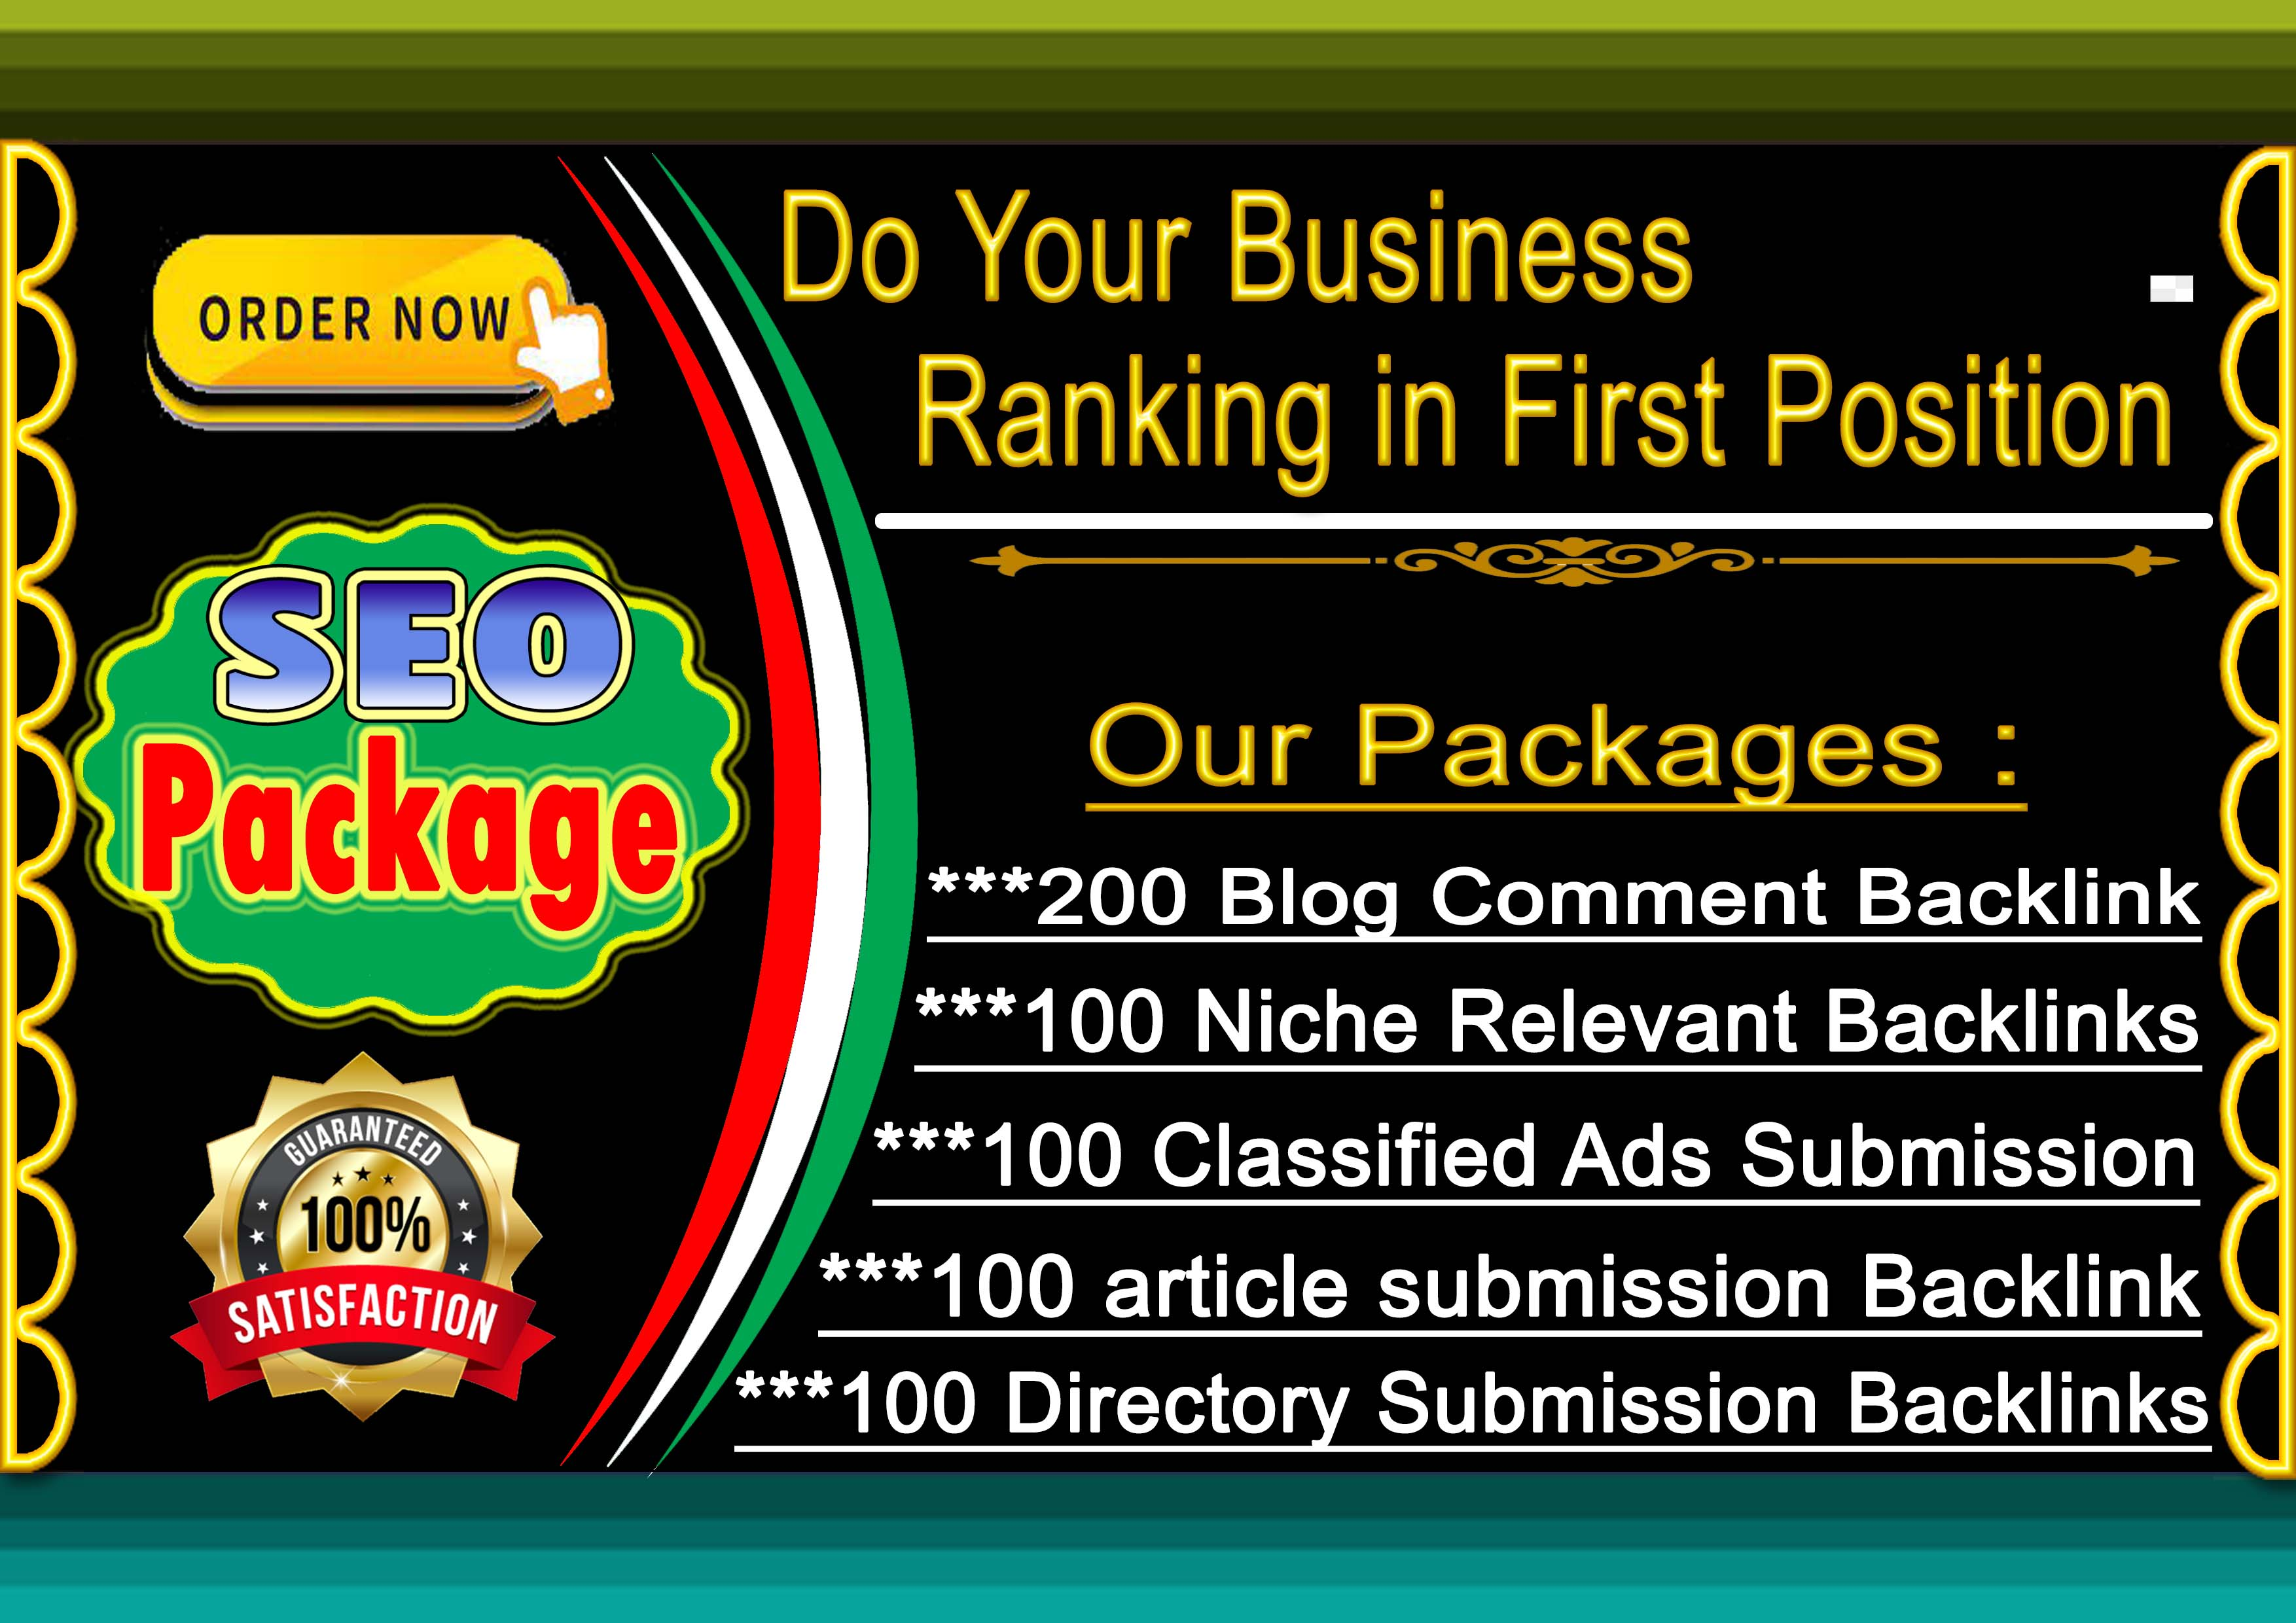 I Will Do 600 SEO Backlink in a Package For Google Top Ranking